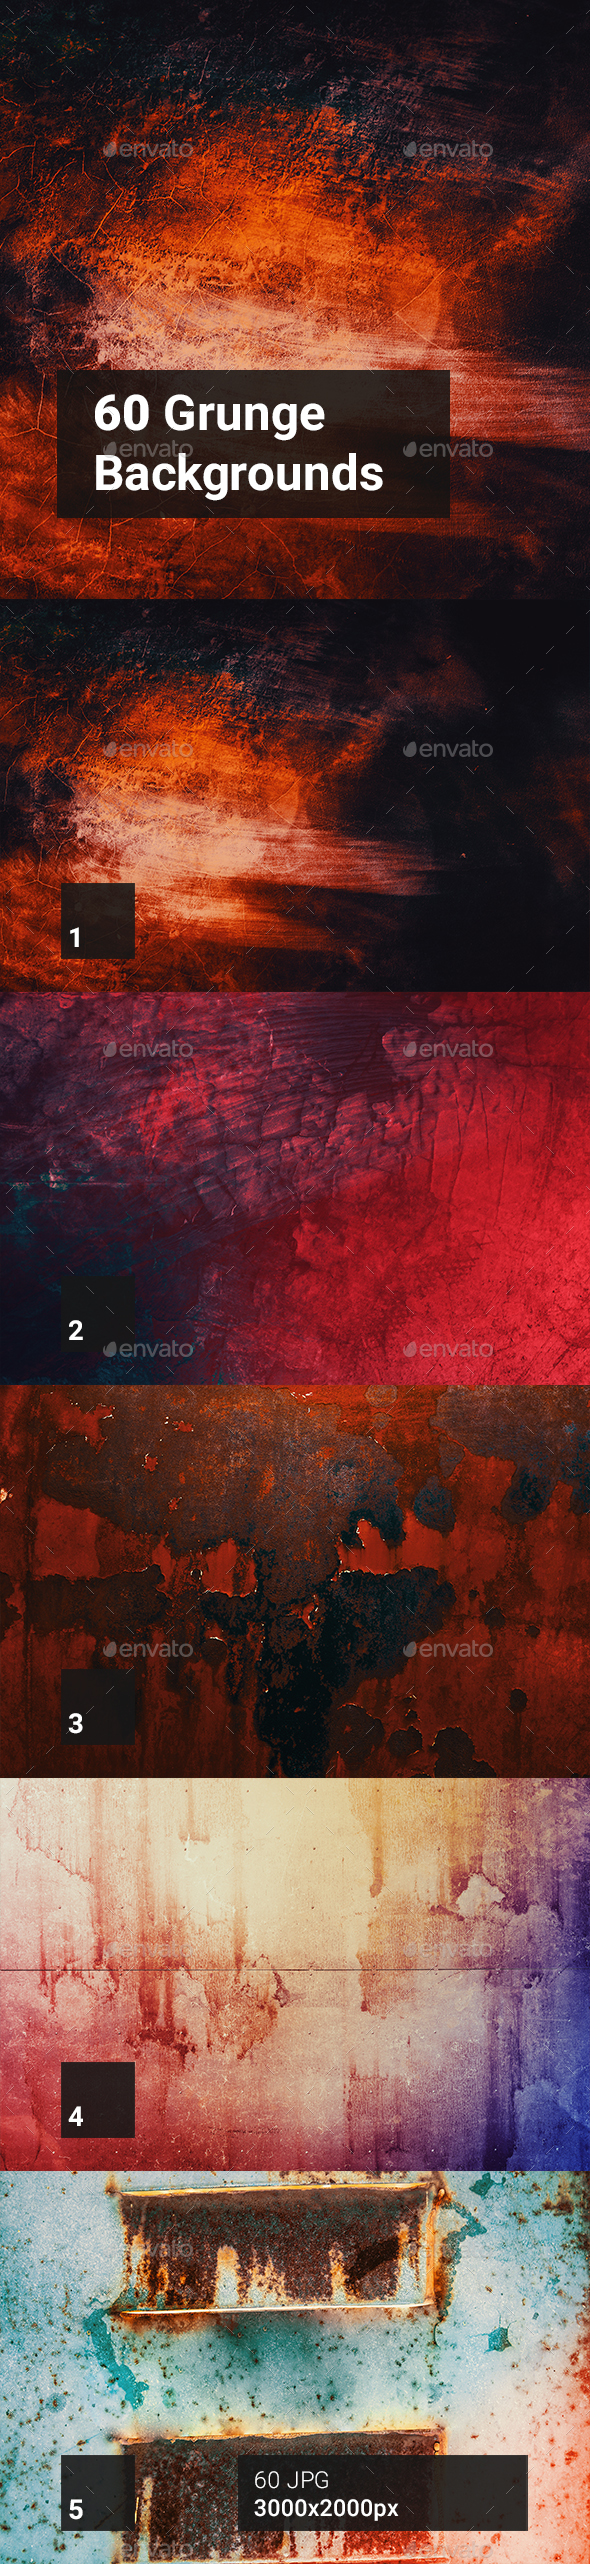 60 Grunge Backgrounds - Abstract Backgrounds